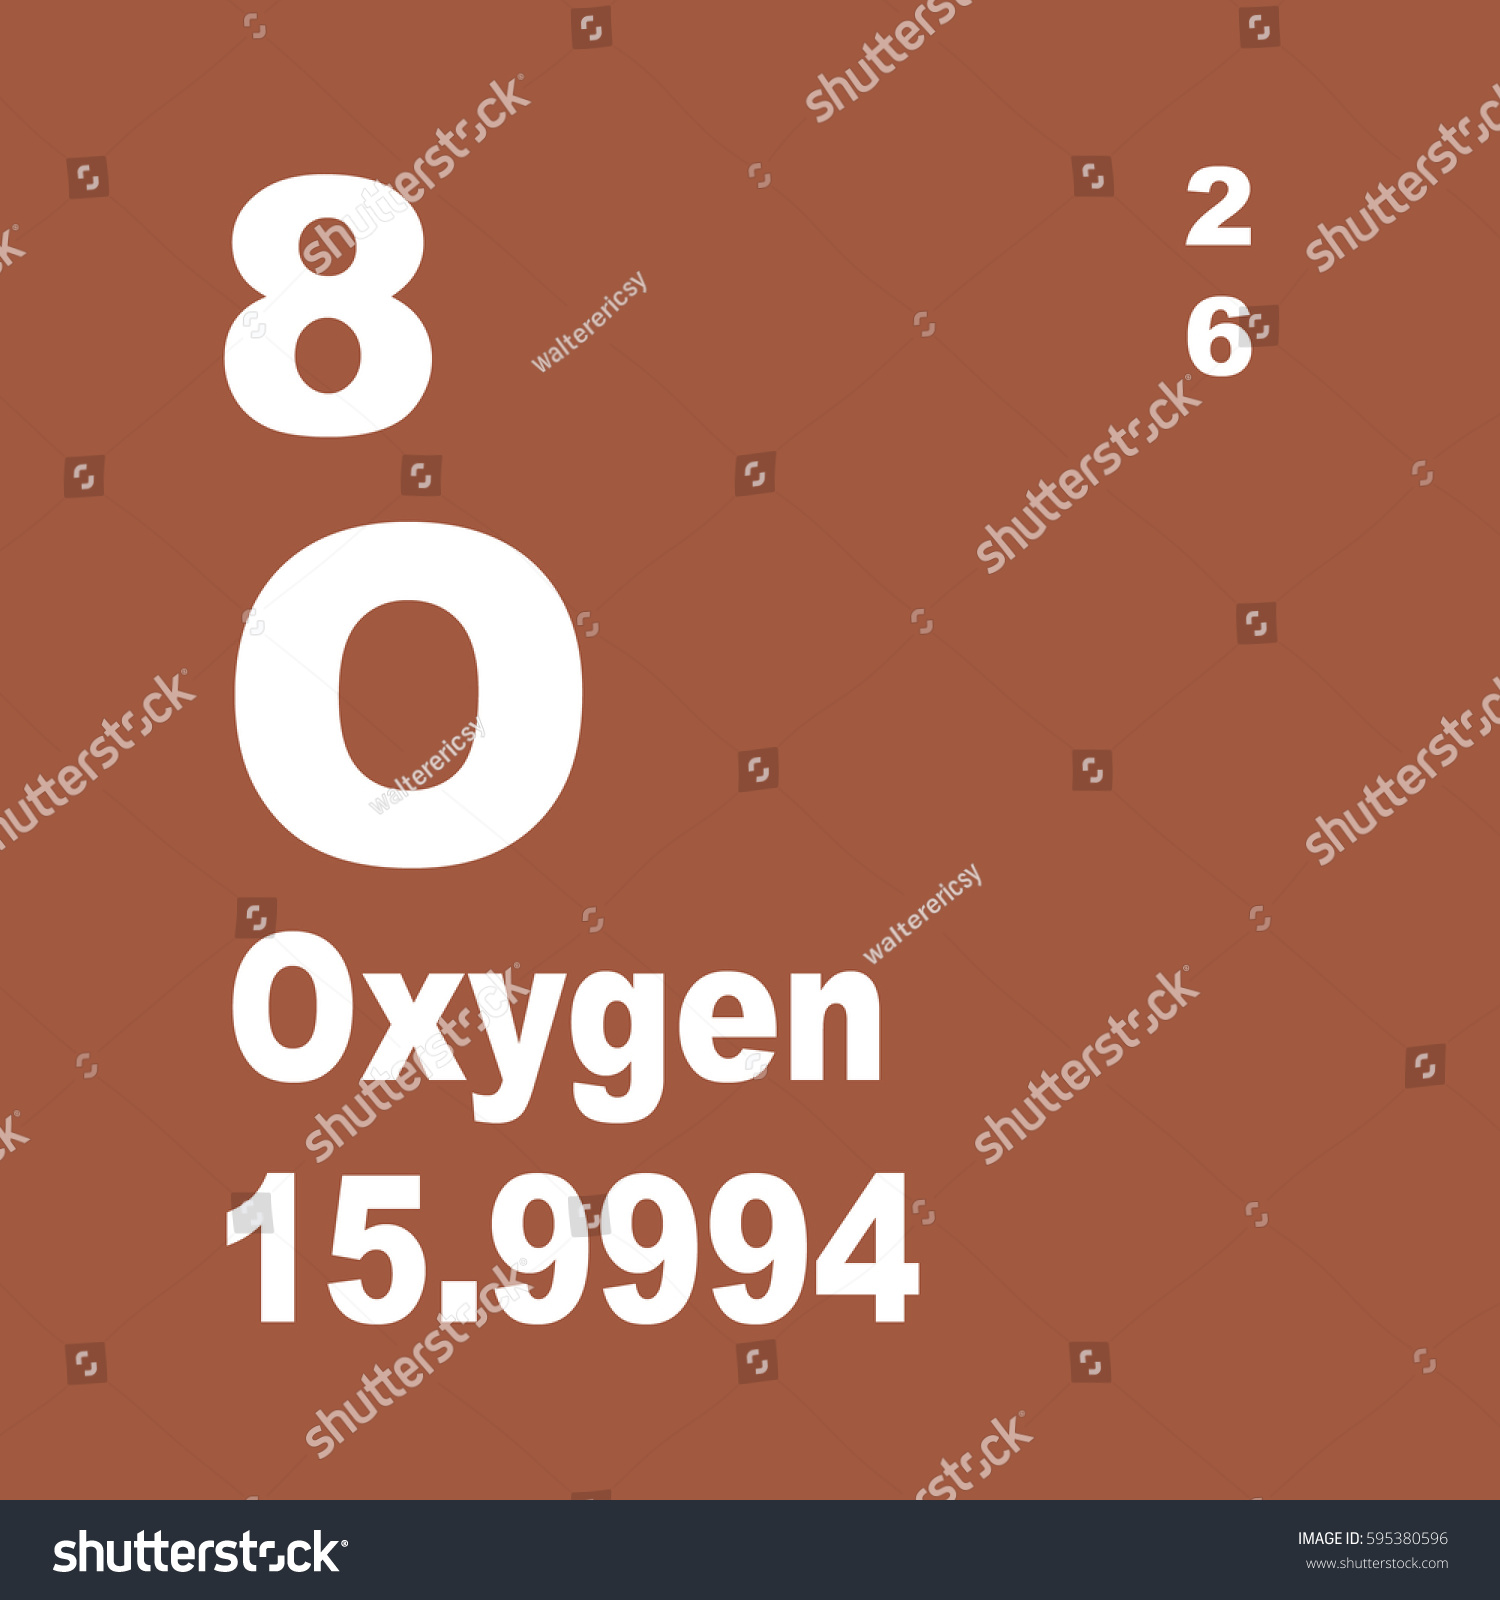 Oxygen periodic table elements stock illustration 595380596 oxygen periodic table of elements gamestrikefo Images